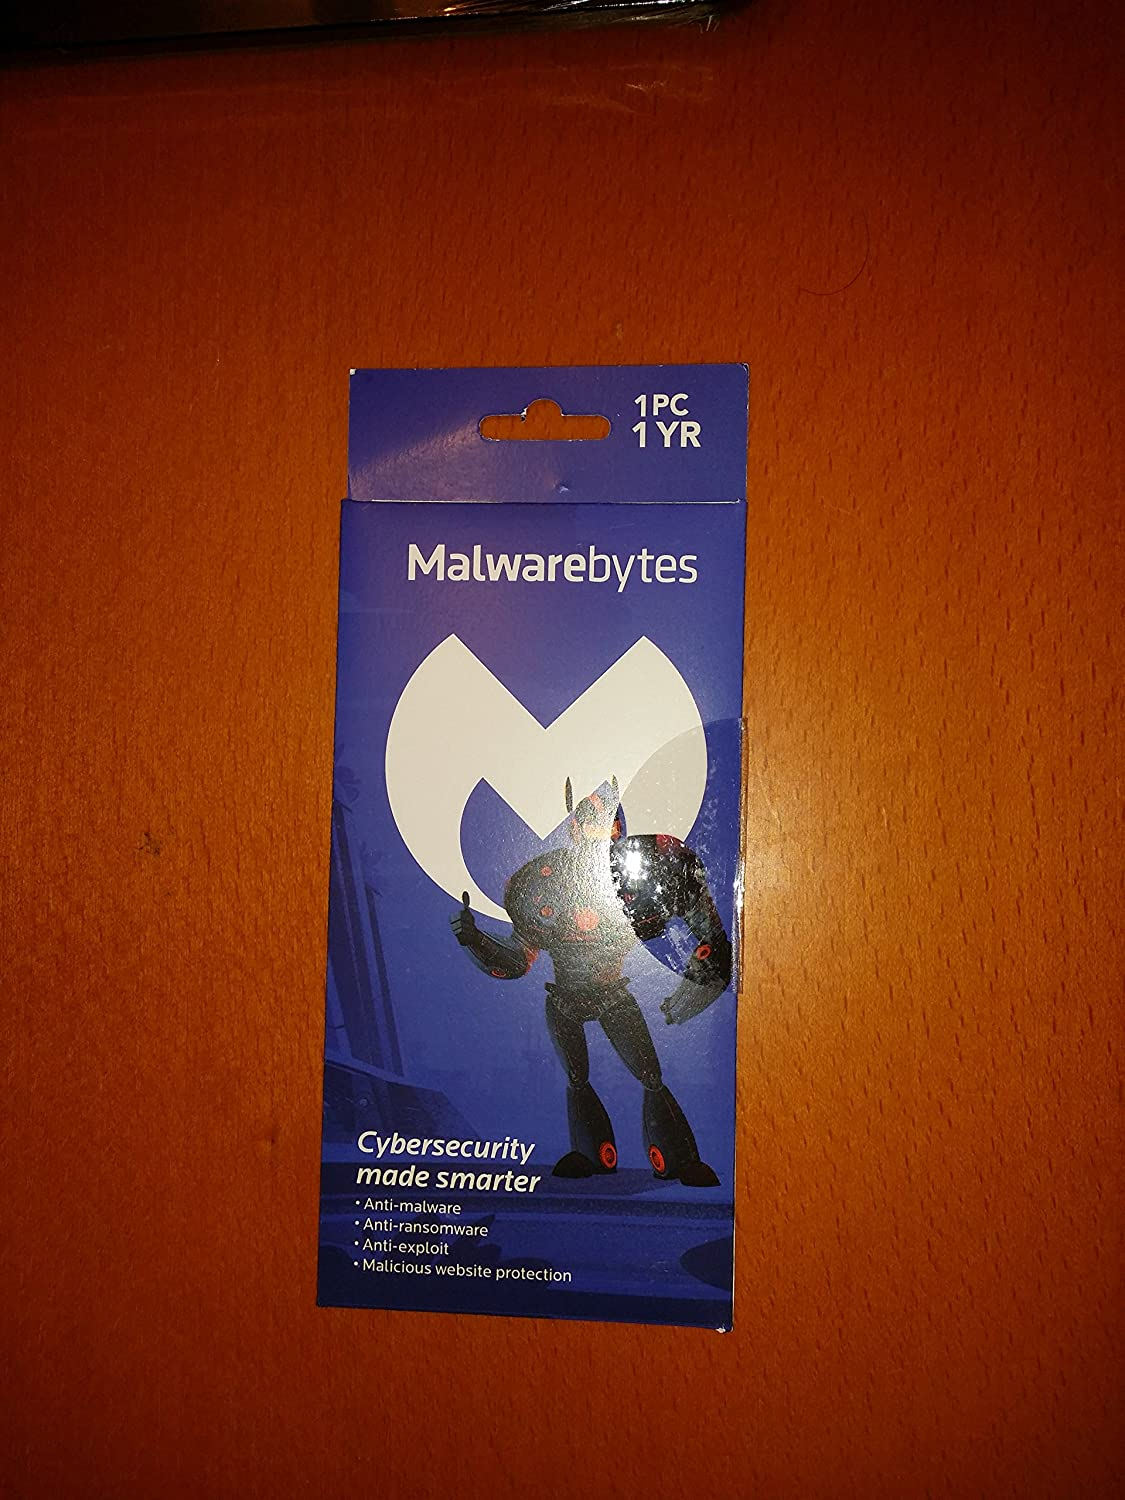 Malwarebytes 854248005132 Anti-Malware Premium 3.0 - 1 PC / 1 Year